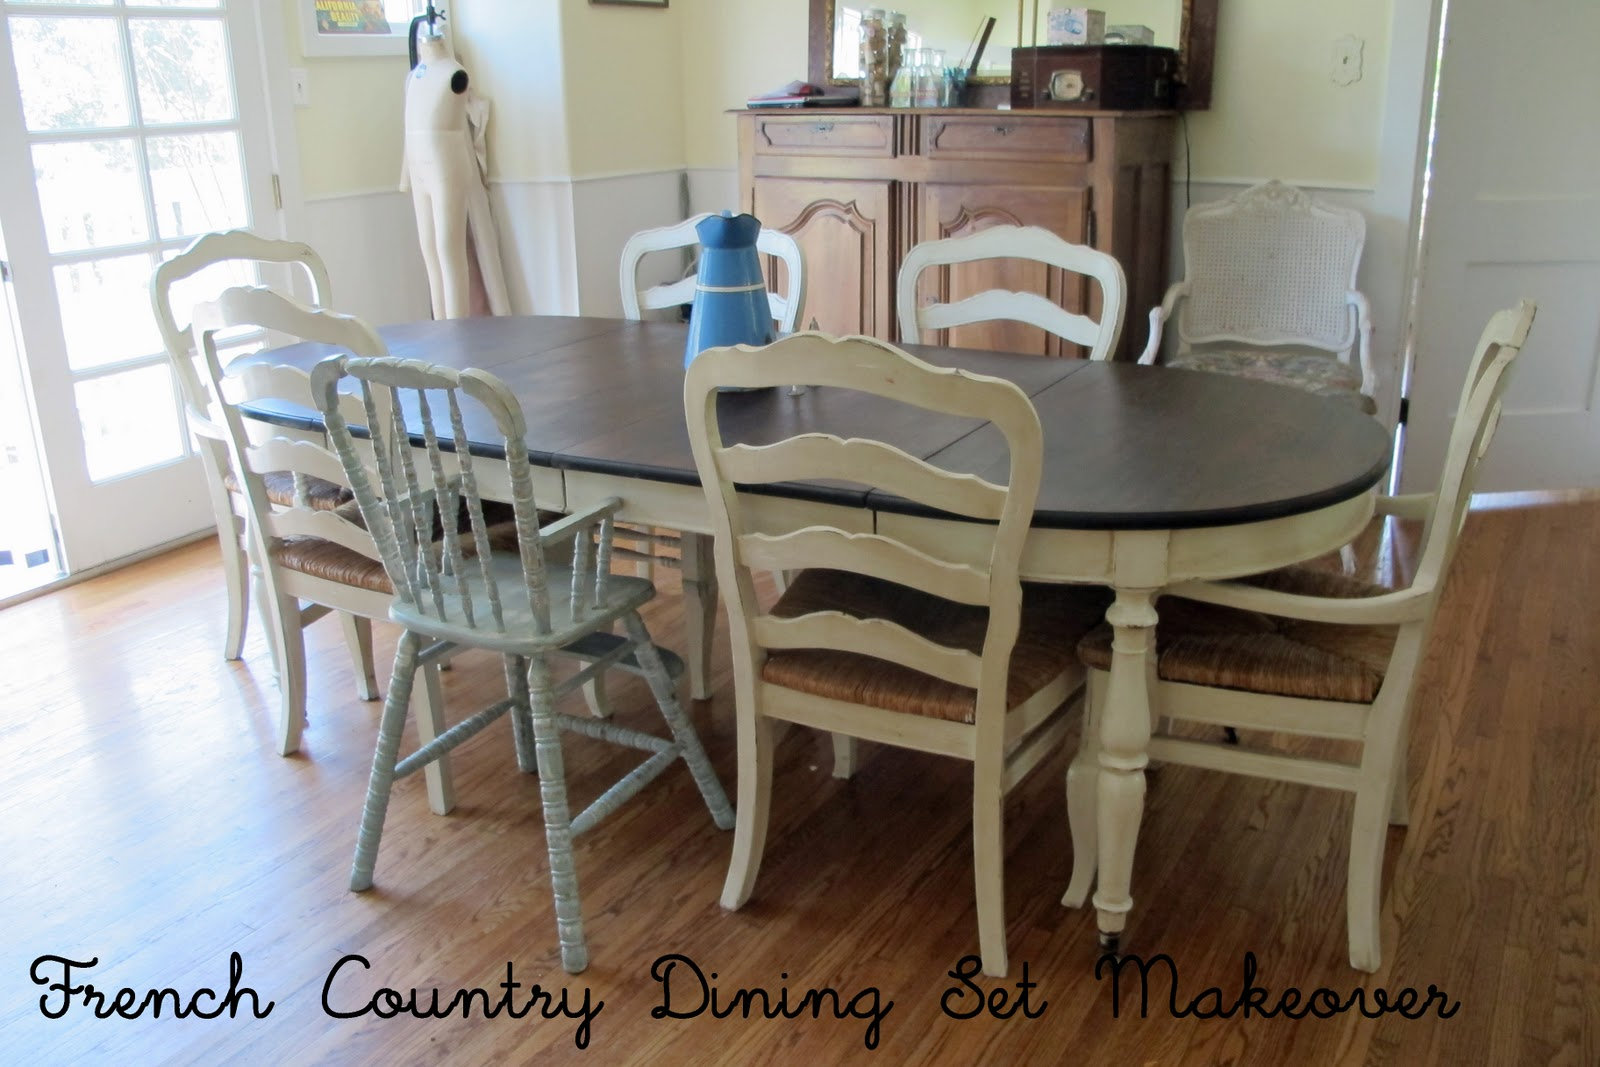 french country kitchen dining sets country kitchen table sets french country kitchen dining sets photo 4